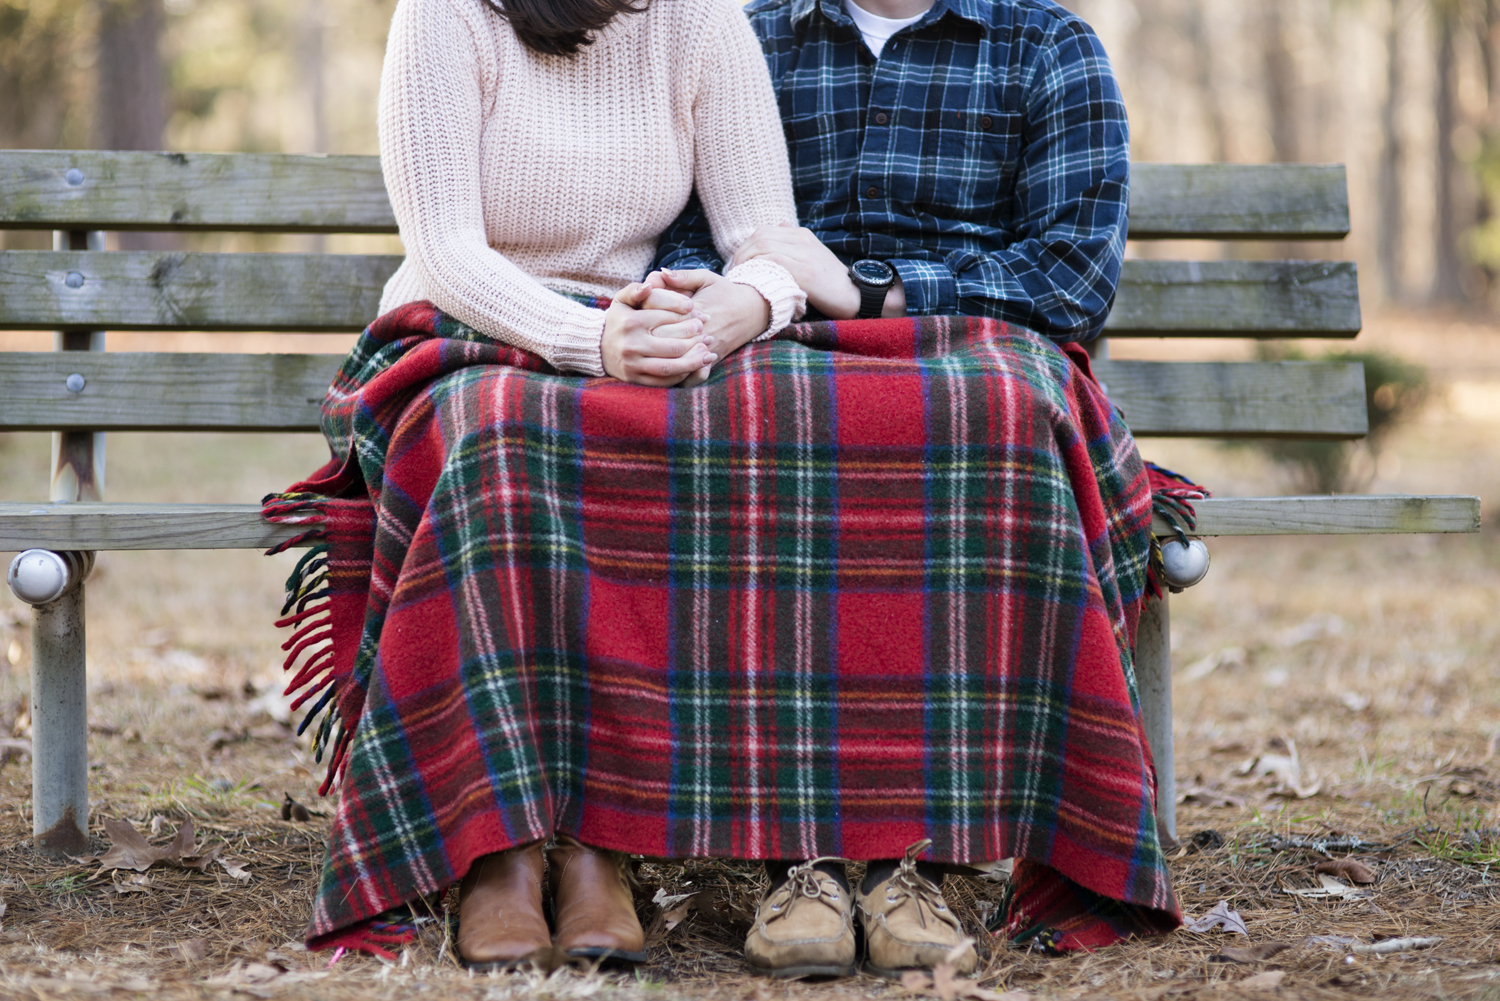 Plaid blanket, boots, and Sperry's engagement picture